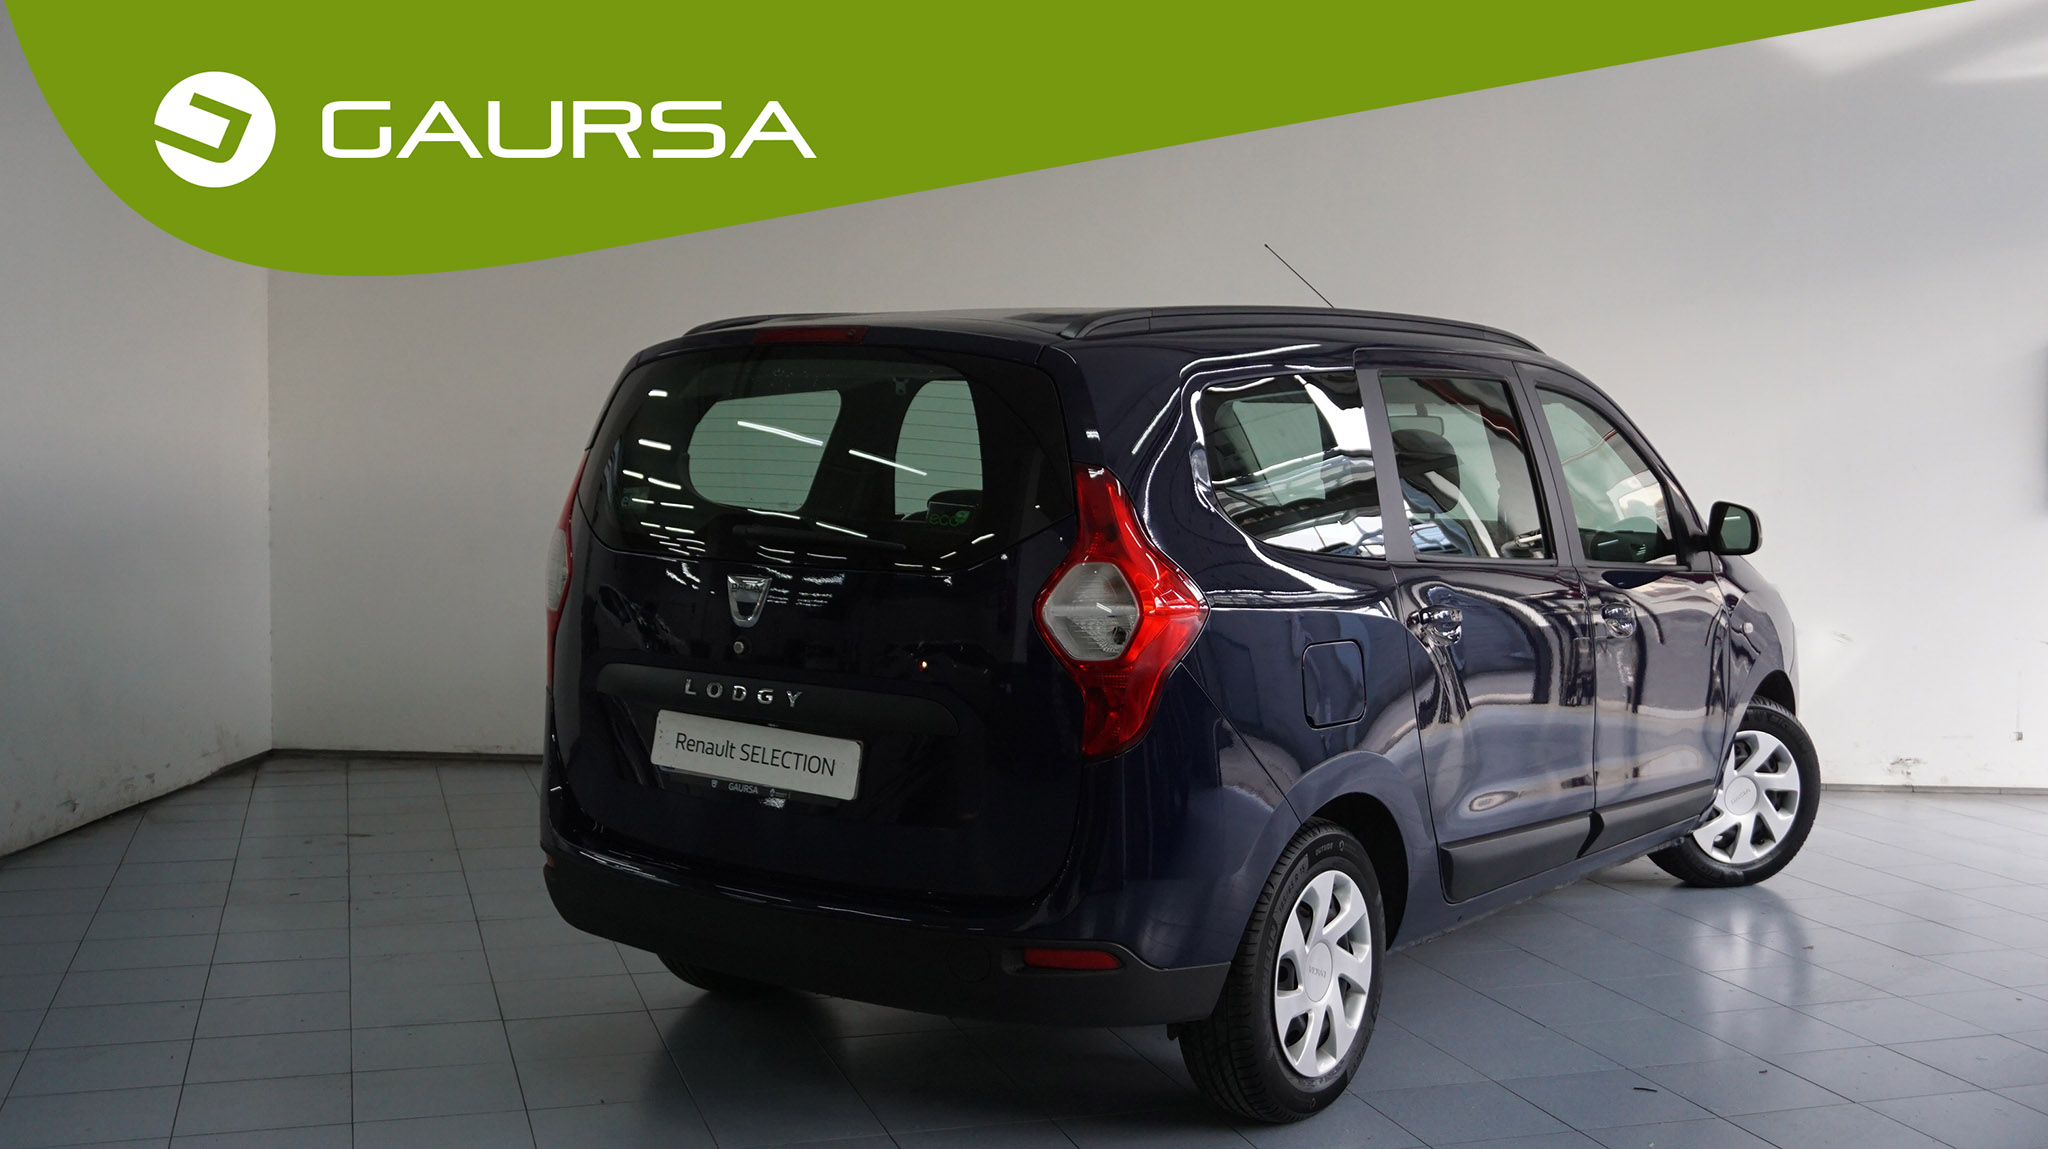 DACIA LODGY 1.5 DCI 110 ECO2 LAUREATE 107 5P